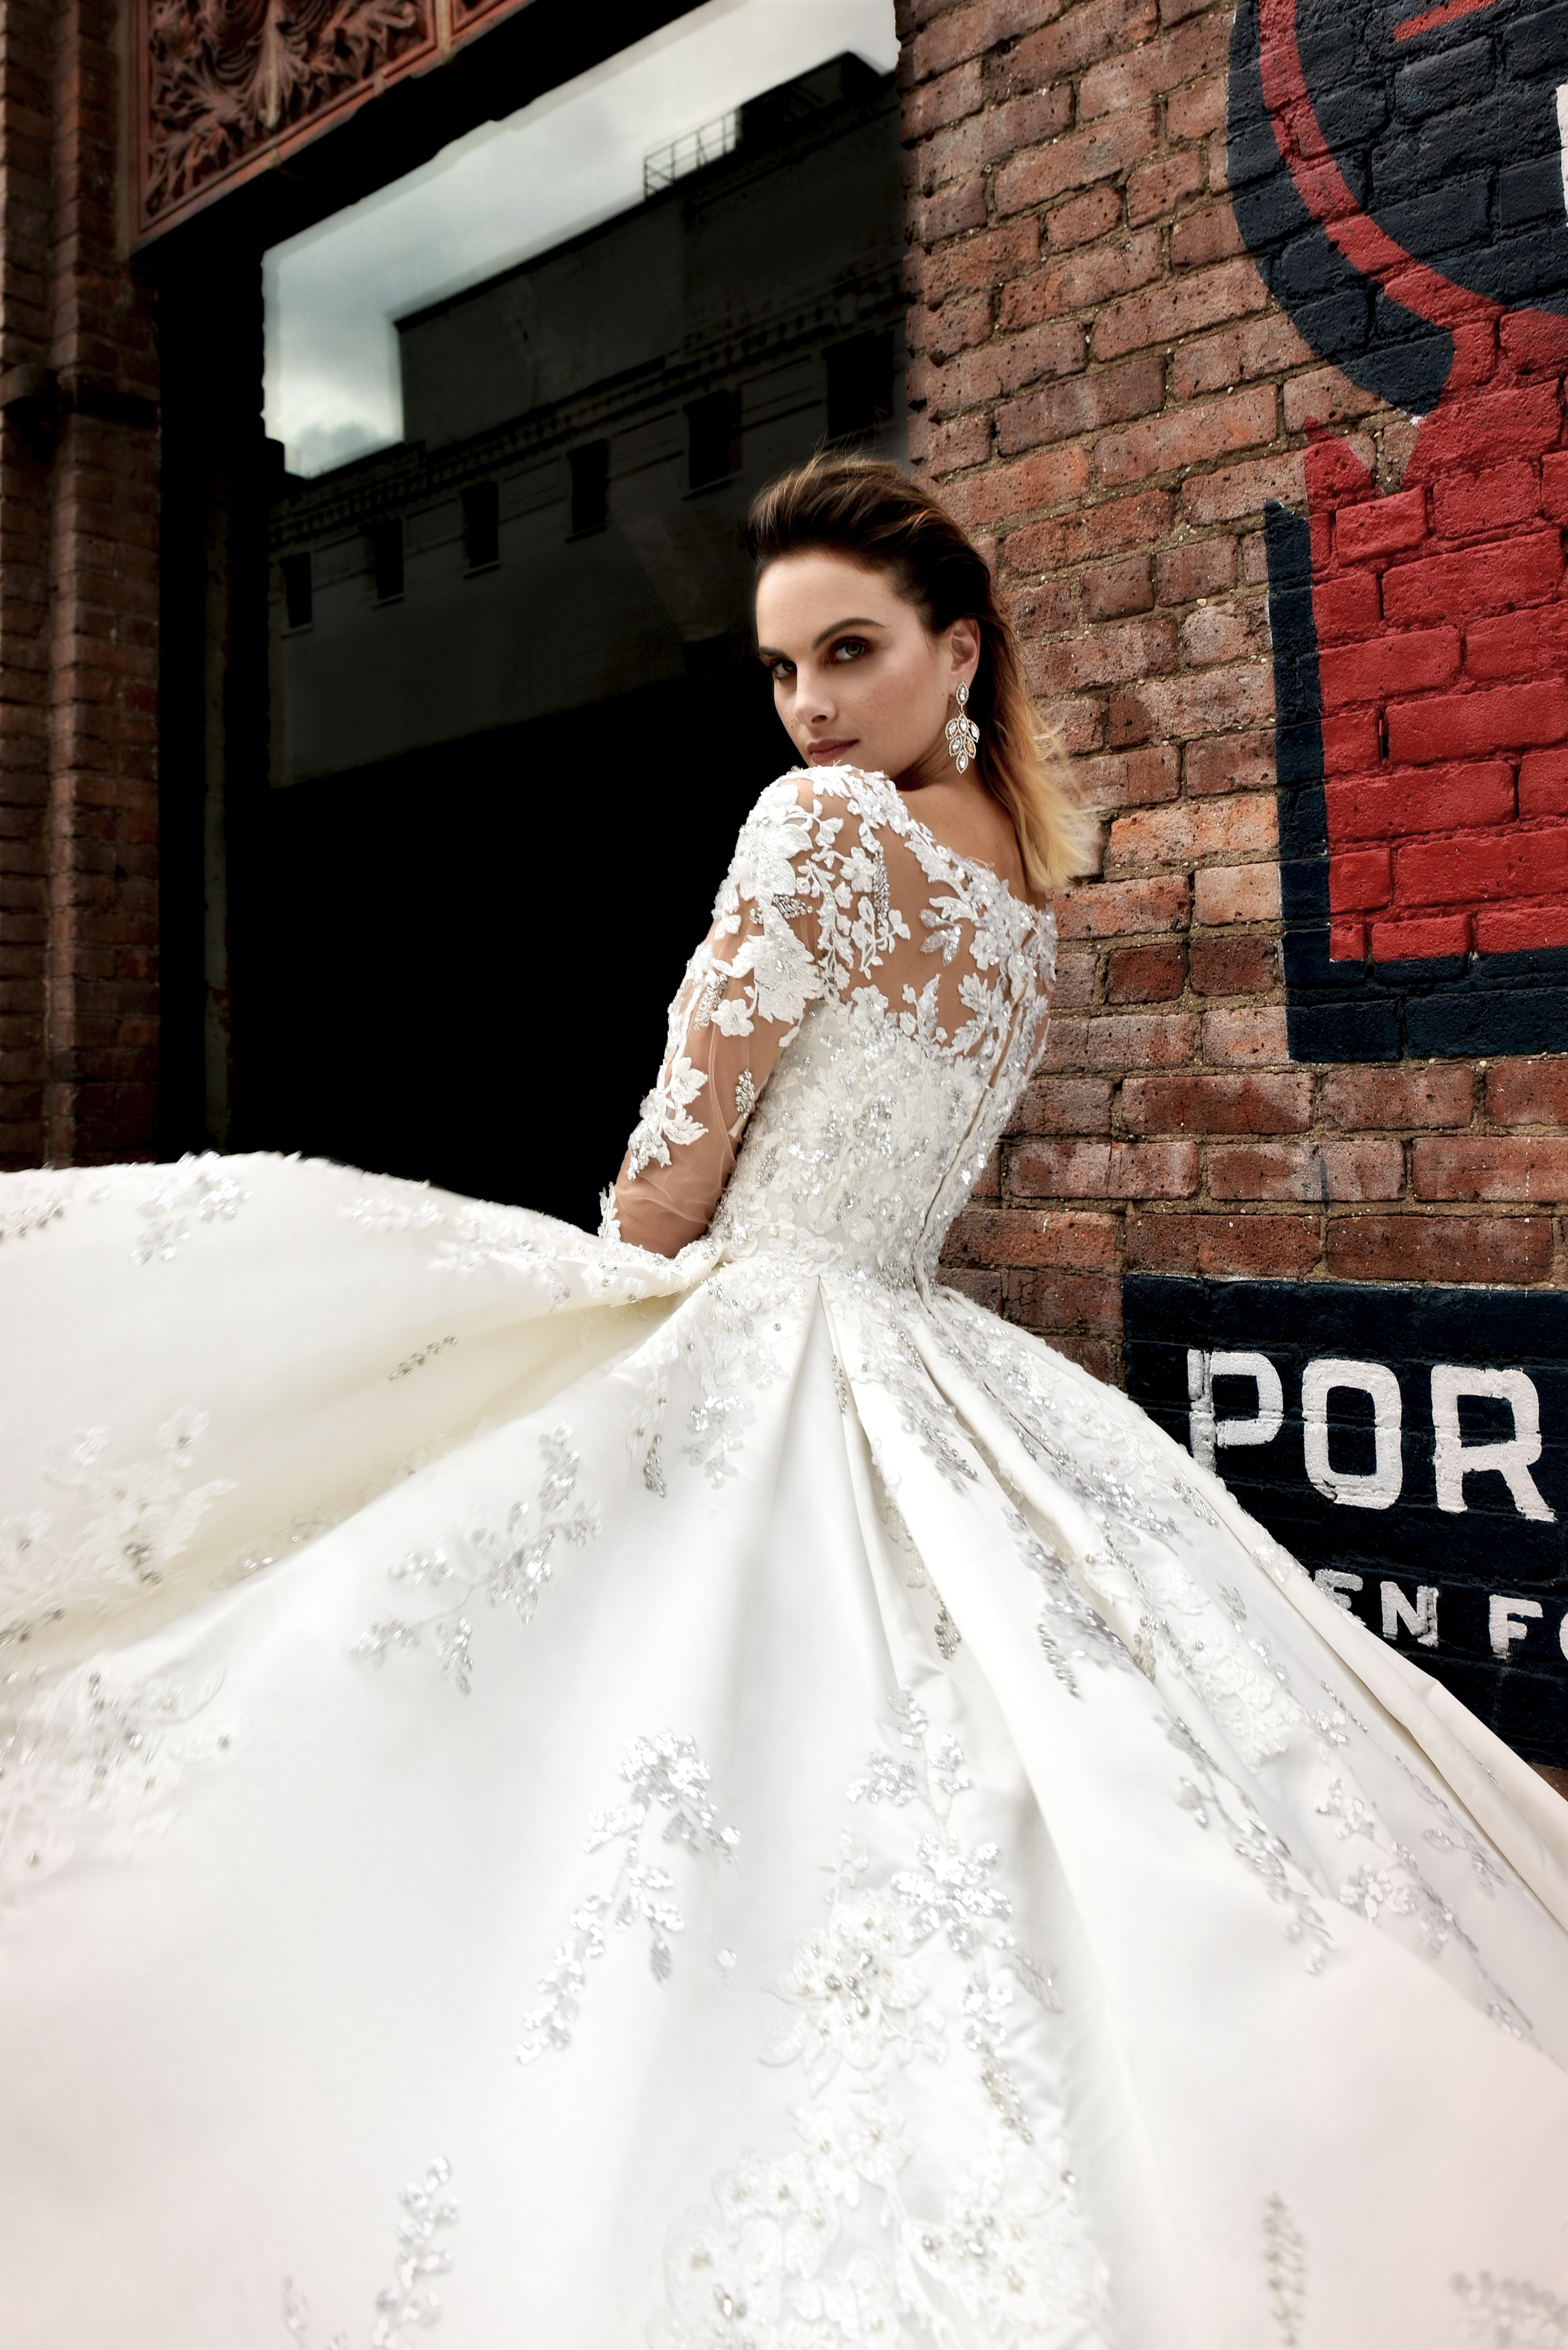 2fe9a2a9c7f6f Mon Amie Bridal is thrilled to showcase the 2019 Ysa Makino and Stephen  Yearick collections on the west coast. The Ysa Makino and Stephen Yearick  ...